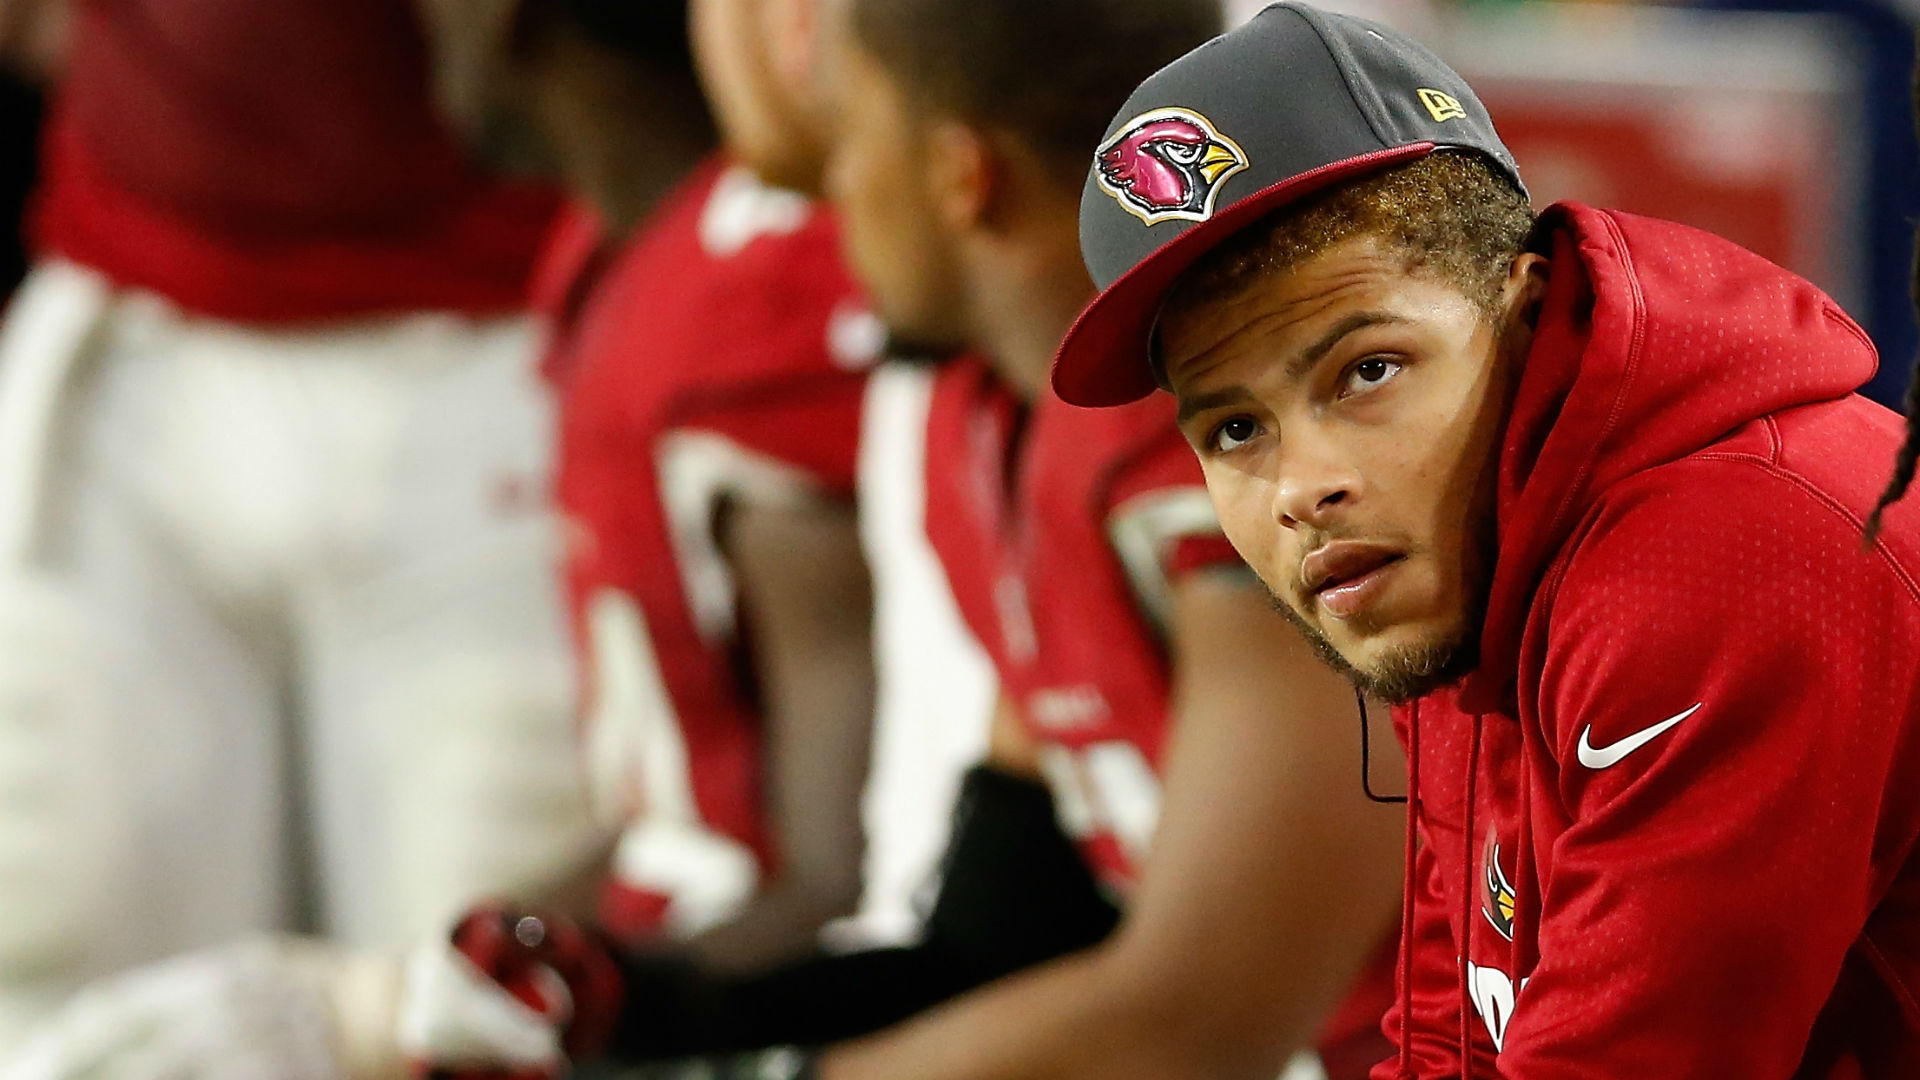 Tyrann Mathieu Never knew he d grow up to be a killer tho